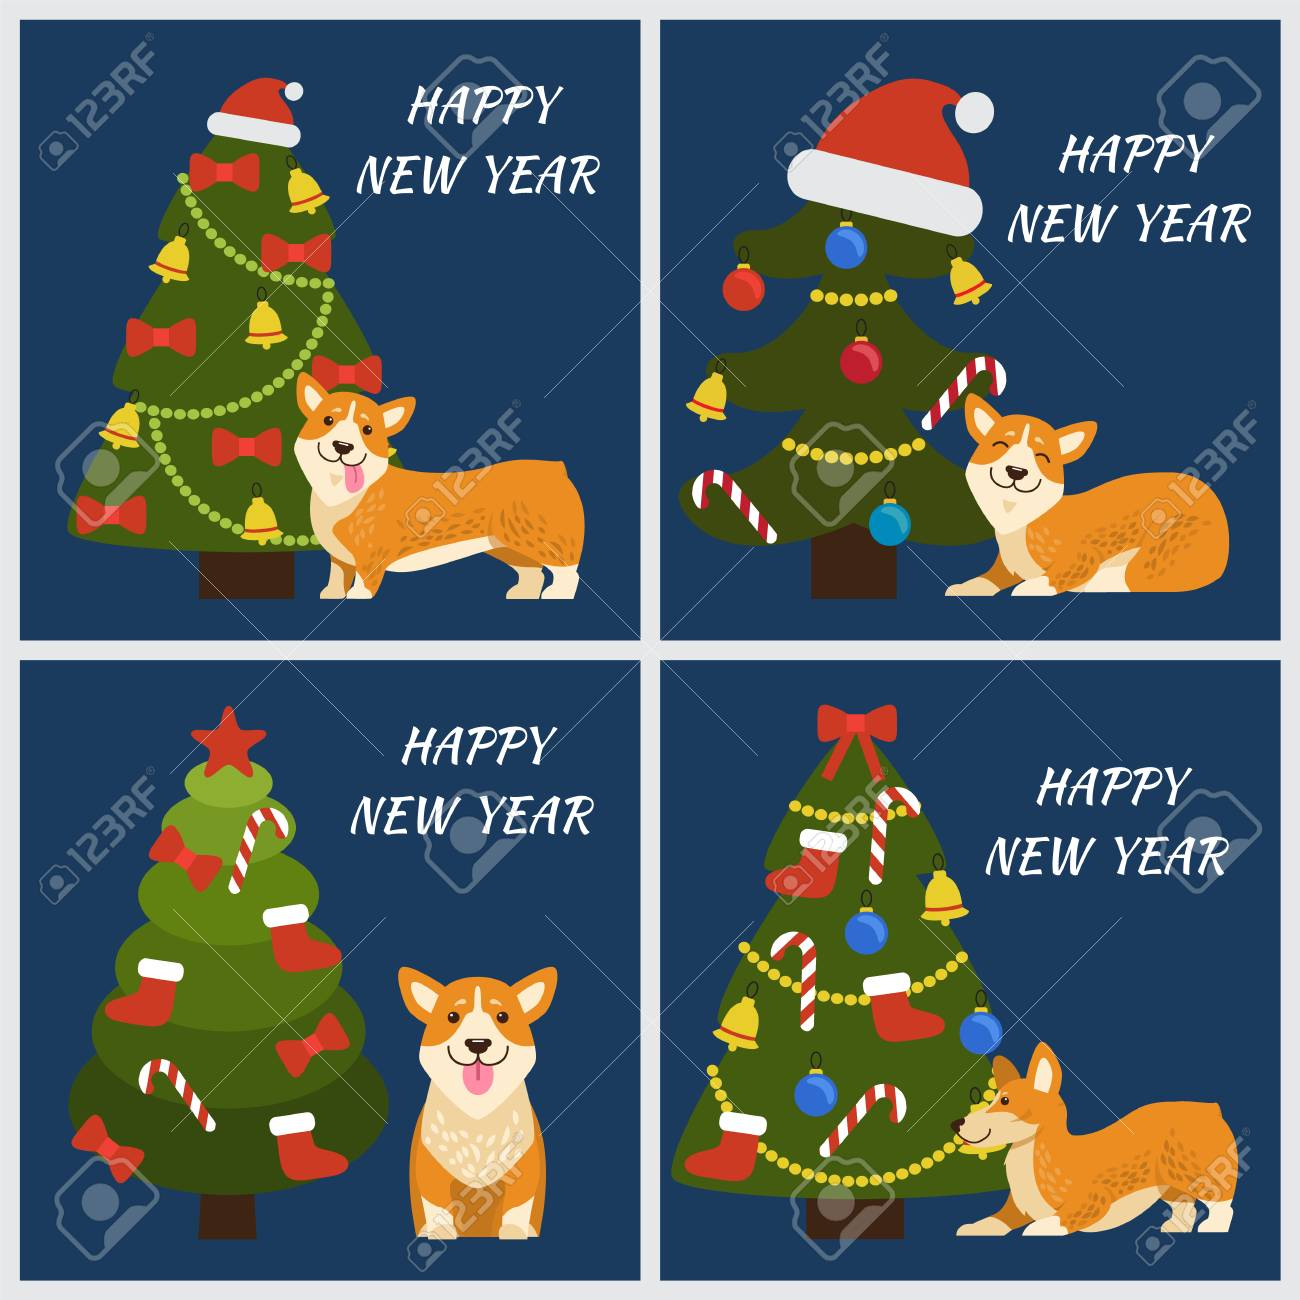 Happy New Year Greeting Cards With Playful Corgi Dog And Decorated ...